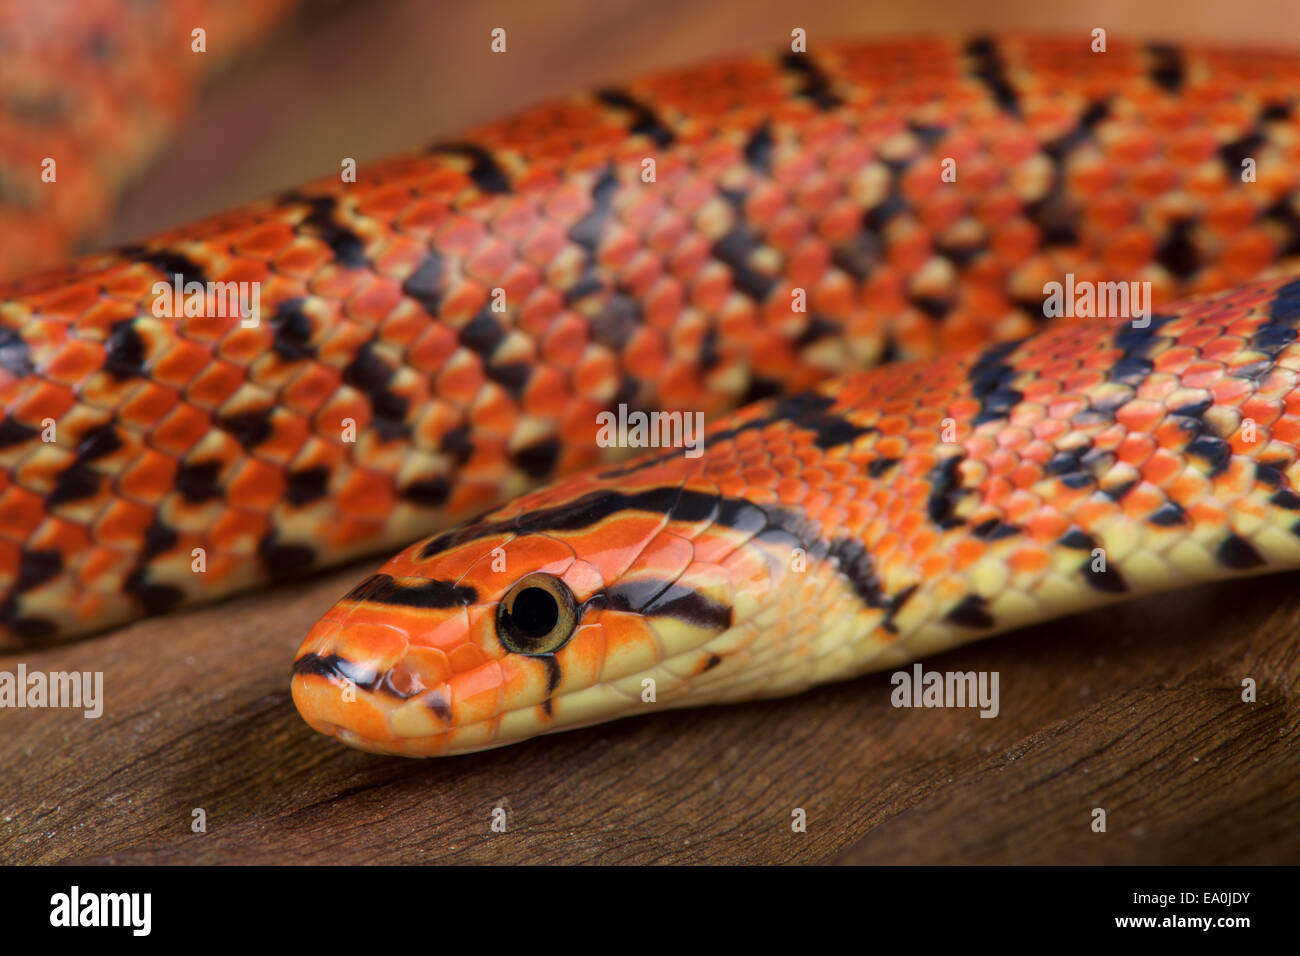 Japanese forest snake / Euprepiophis conspicollatus Stock Photo